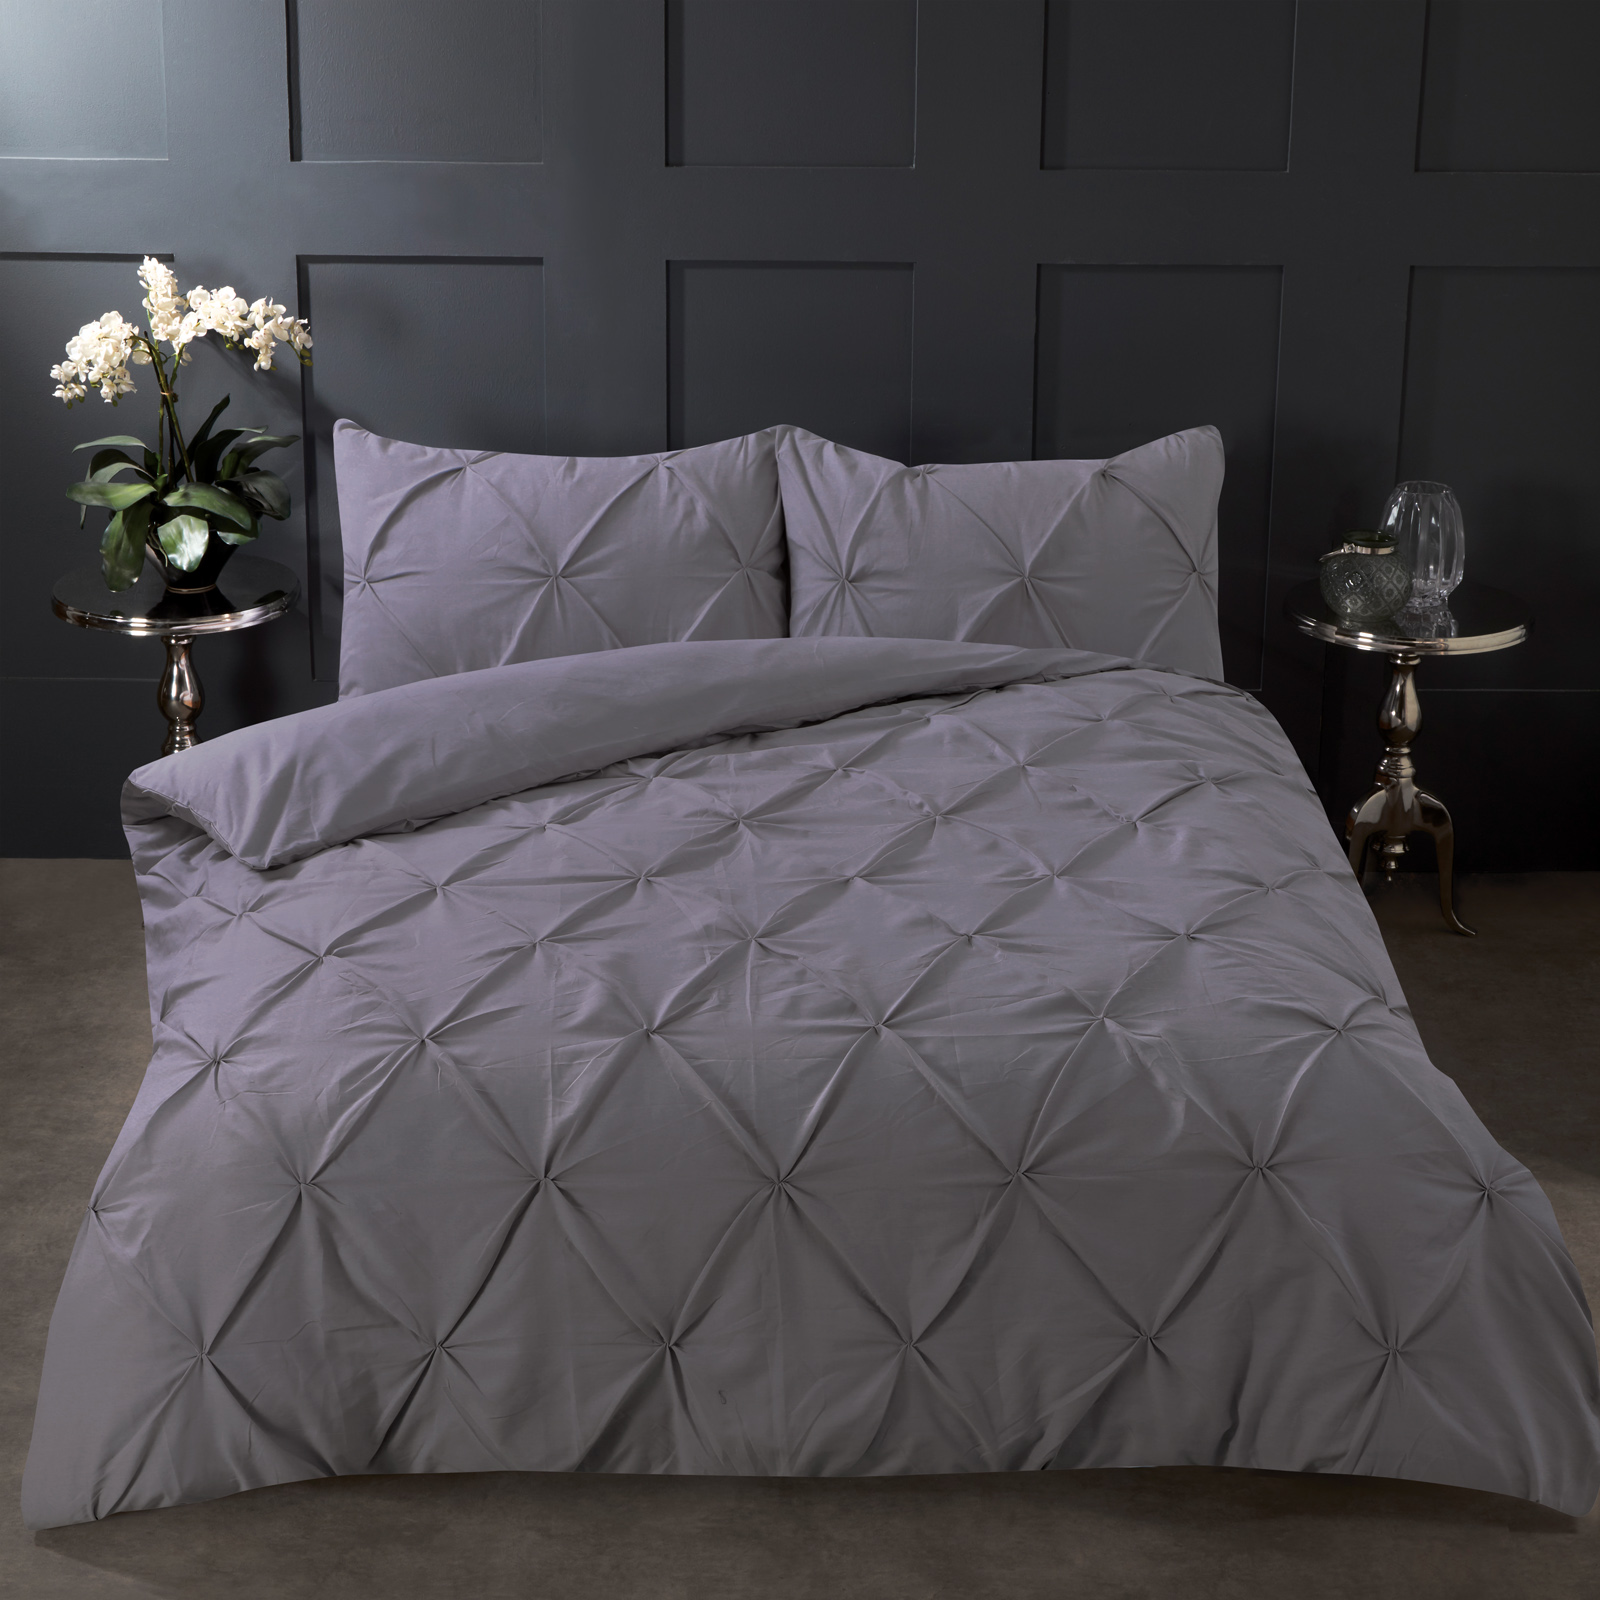 Highams-Pintuck-Pleated-Duvet-Cover-with-Pillowcase-Bedding-Set-Charcoal-White thumbnail 15